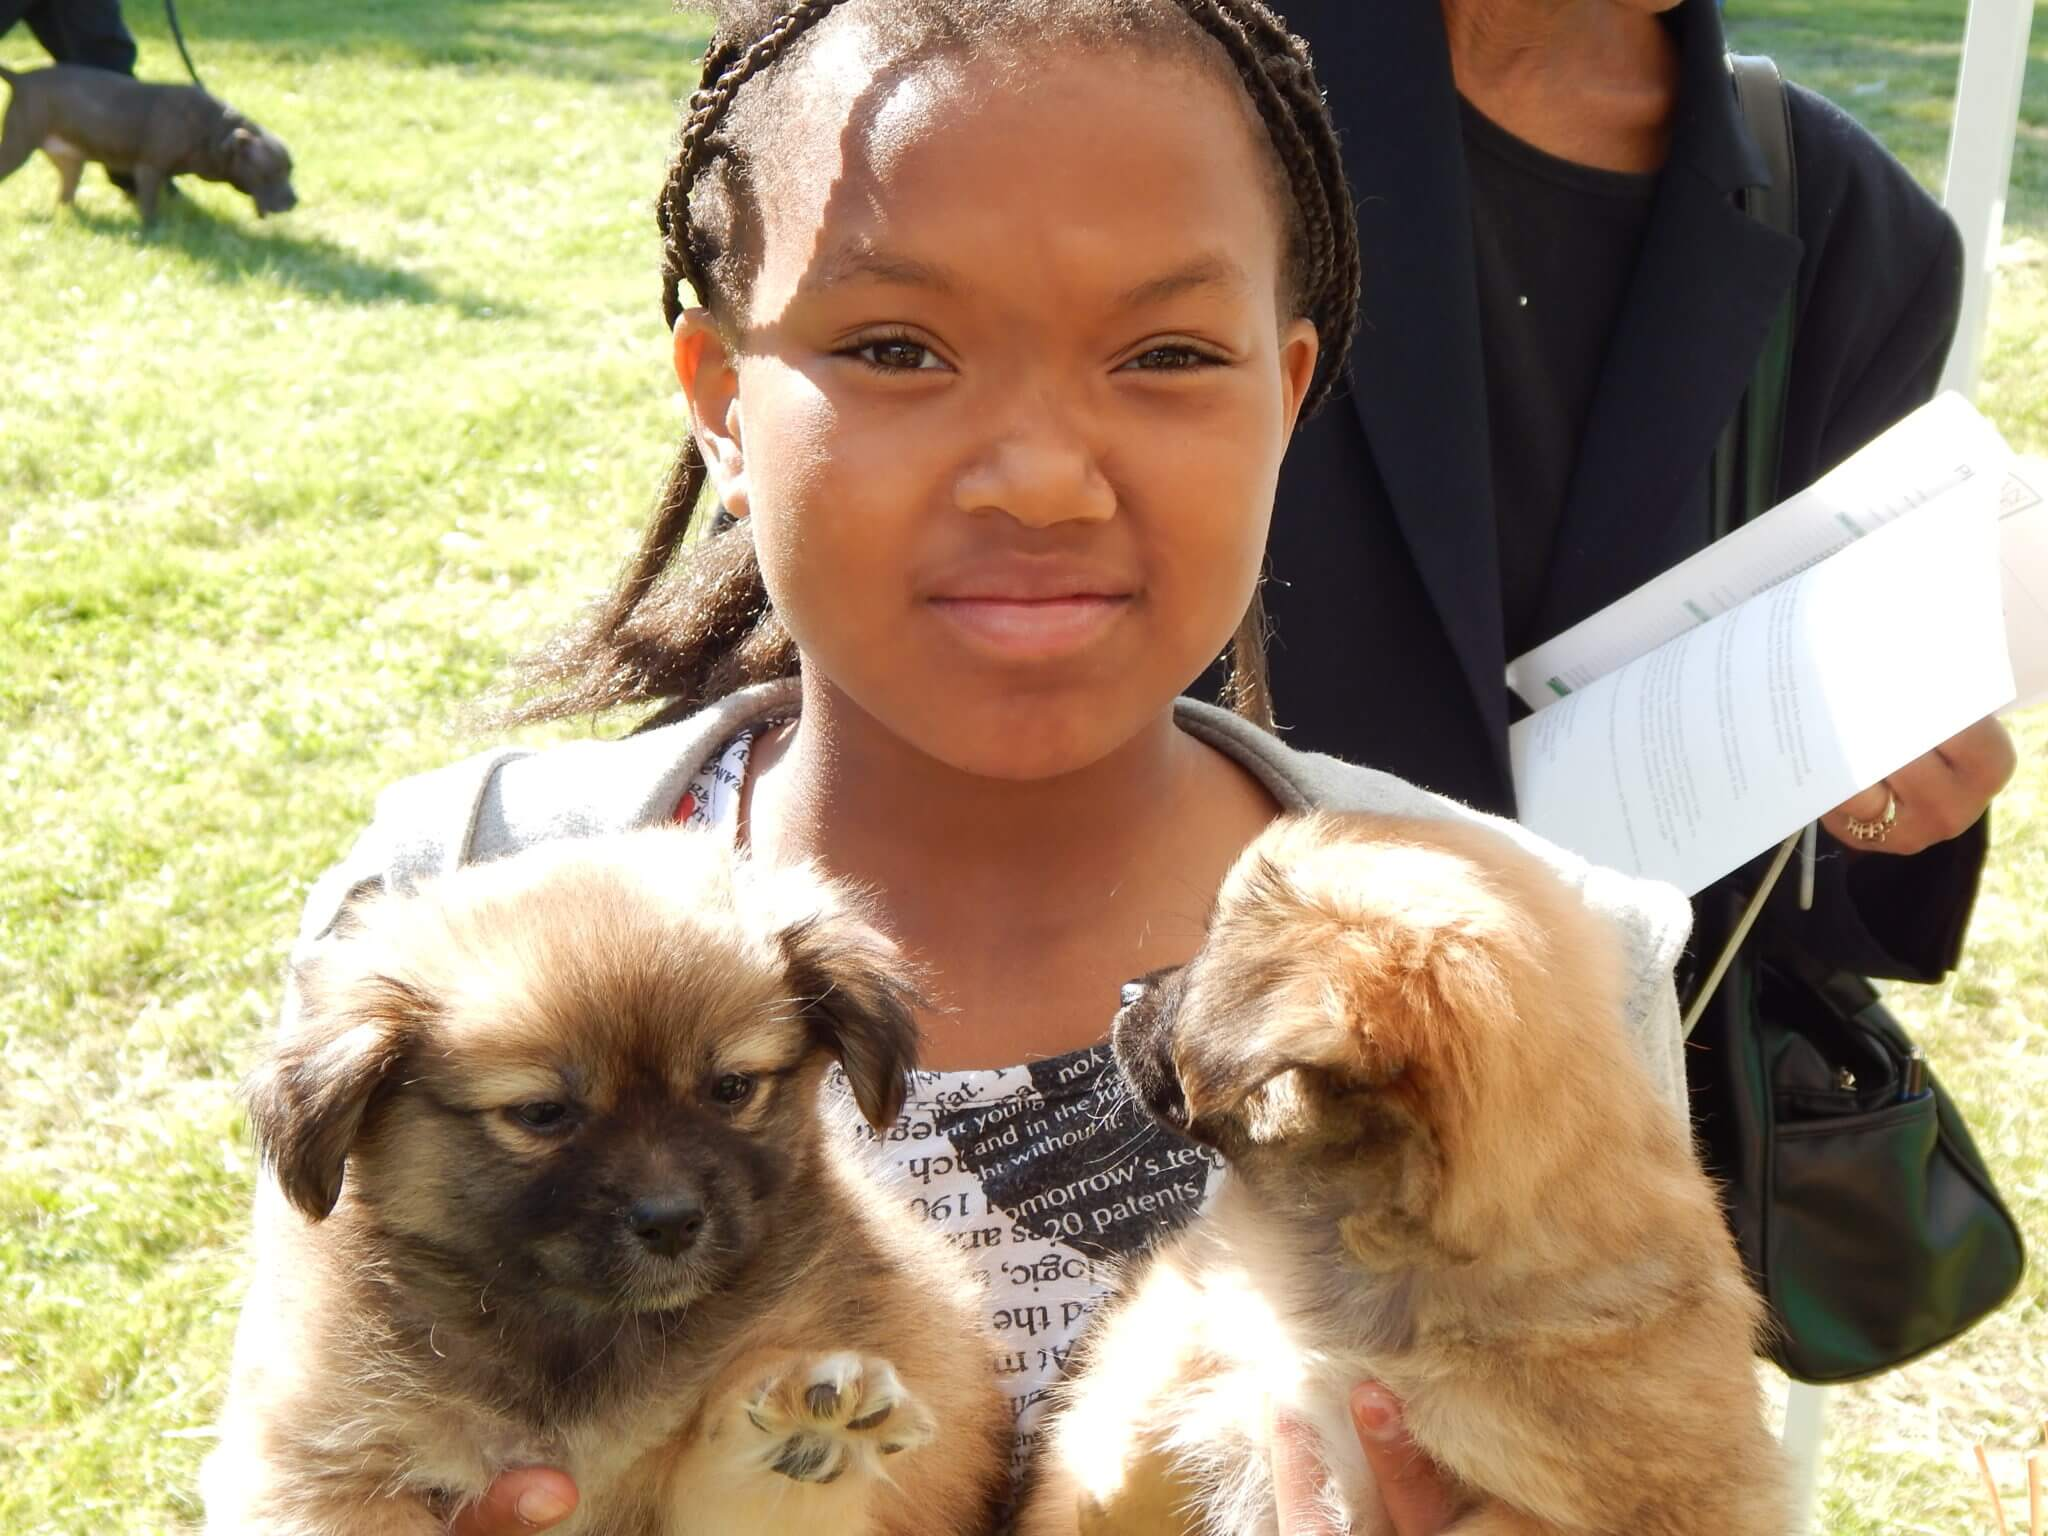 Protect-A-Pet vaccine clinics are one of the ways we reach out to the community to help keep families together.